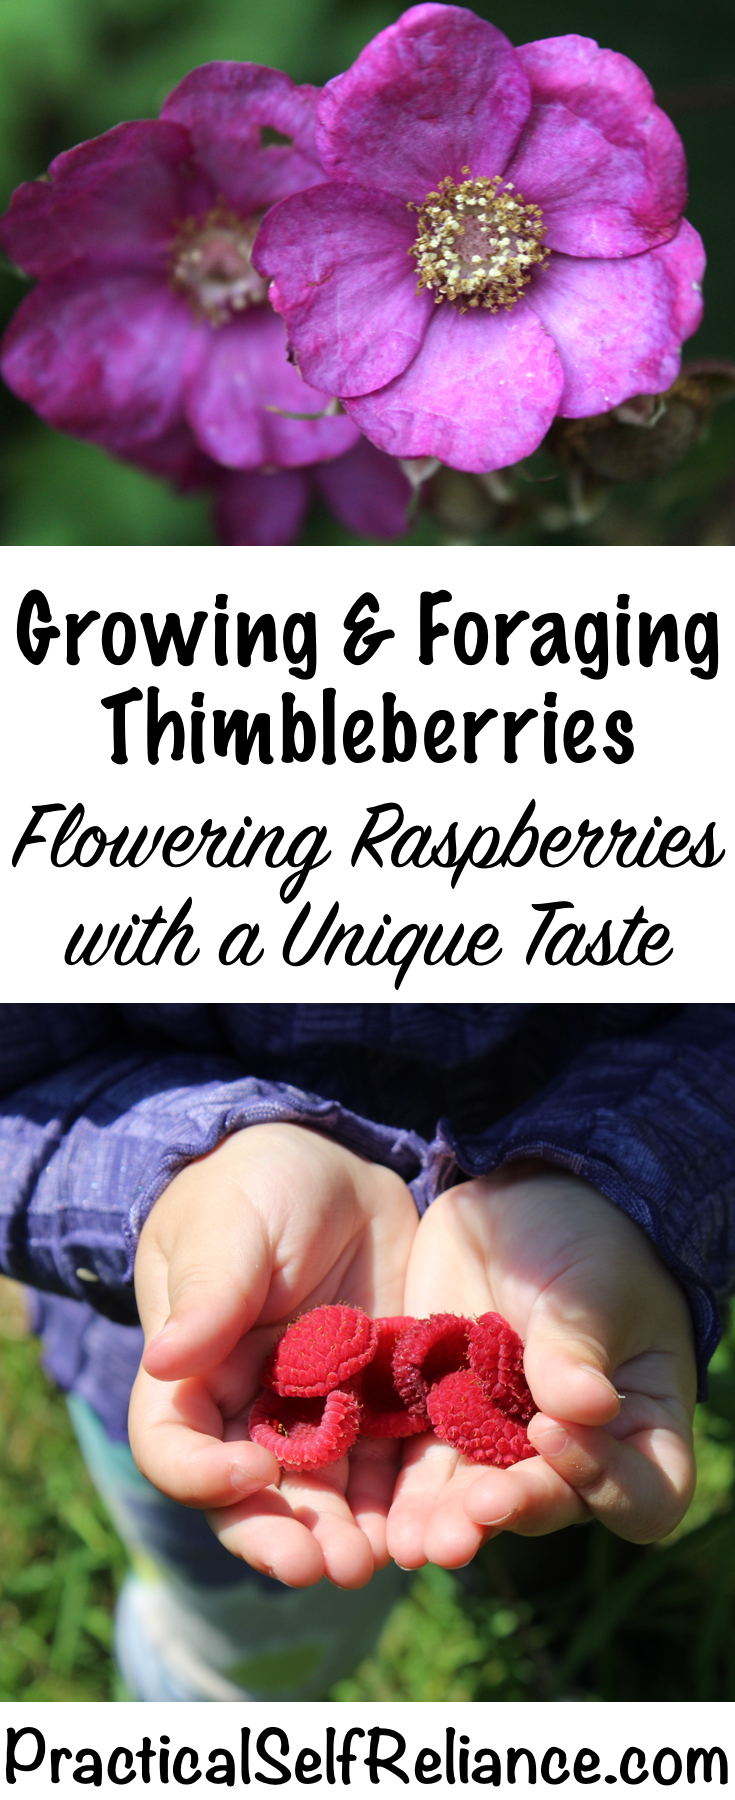 Growing and Foraging Thimbleberries ~ For Food and Medicine #thimbleberries #gardening #organicgardening #foodgardening #howtogrow #vegetablegardening #gardeningtips #homesteading #homestead #selfreliant #foraging #wildfood #forage #selfsufficiency  #wildcrafting #wildedibles